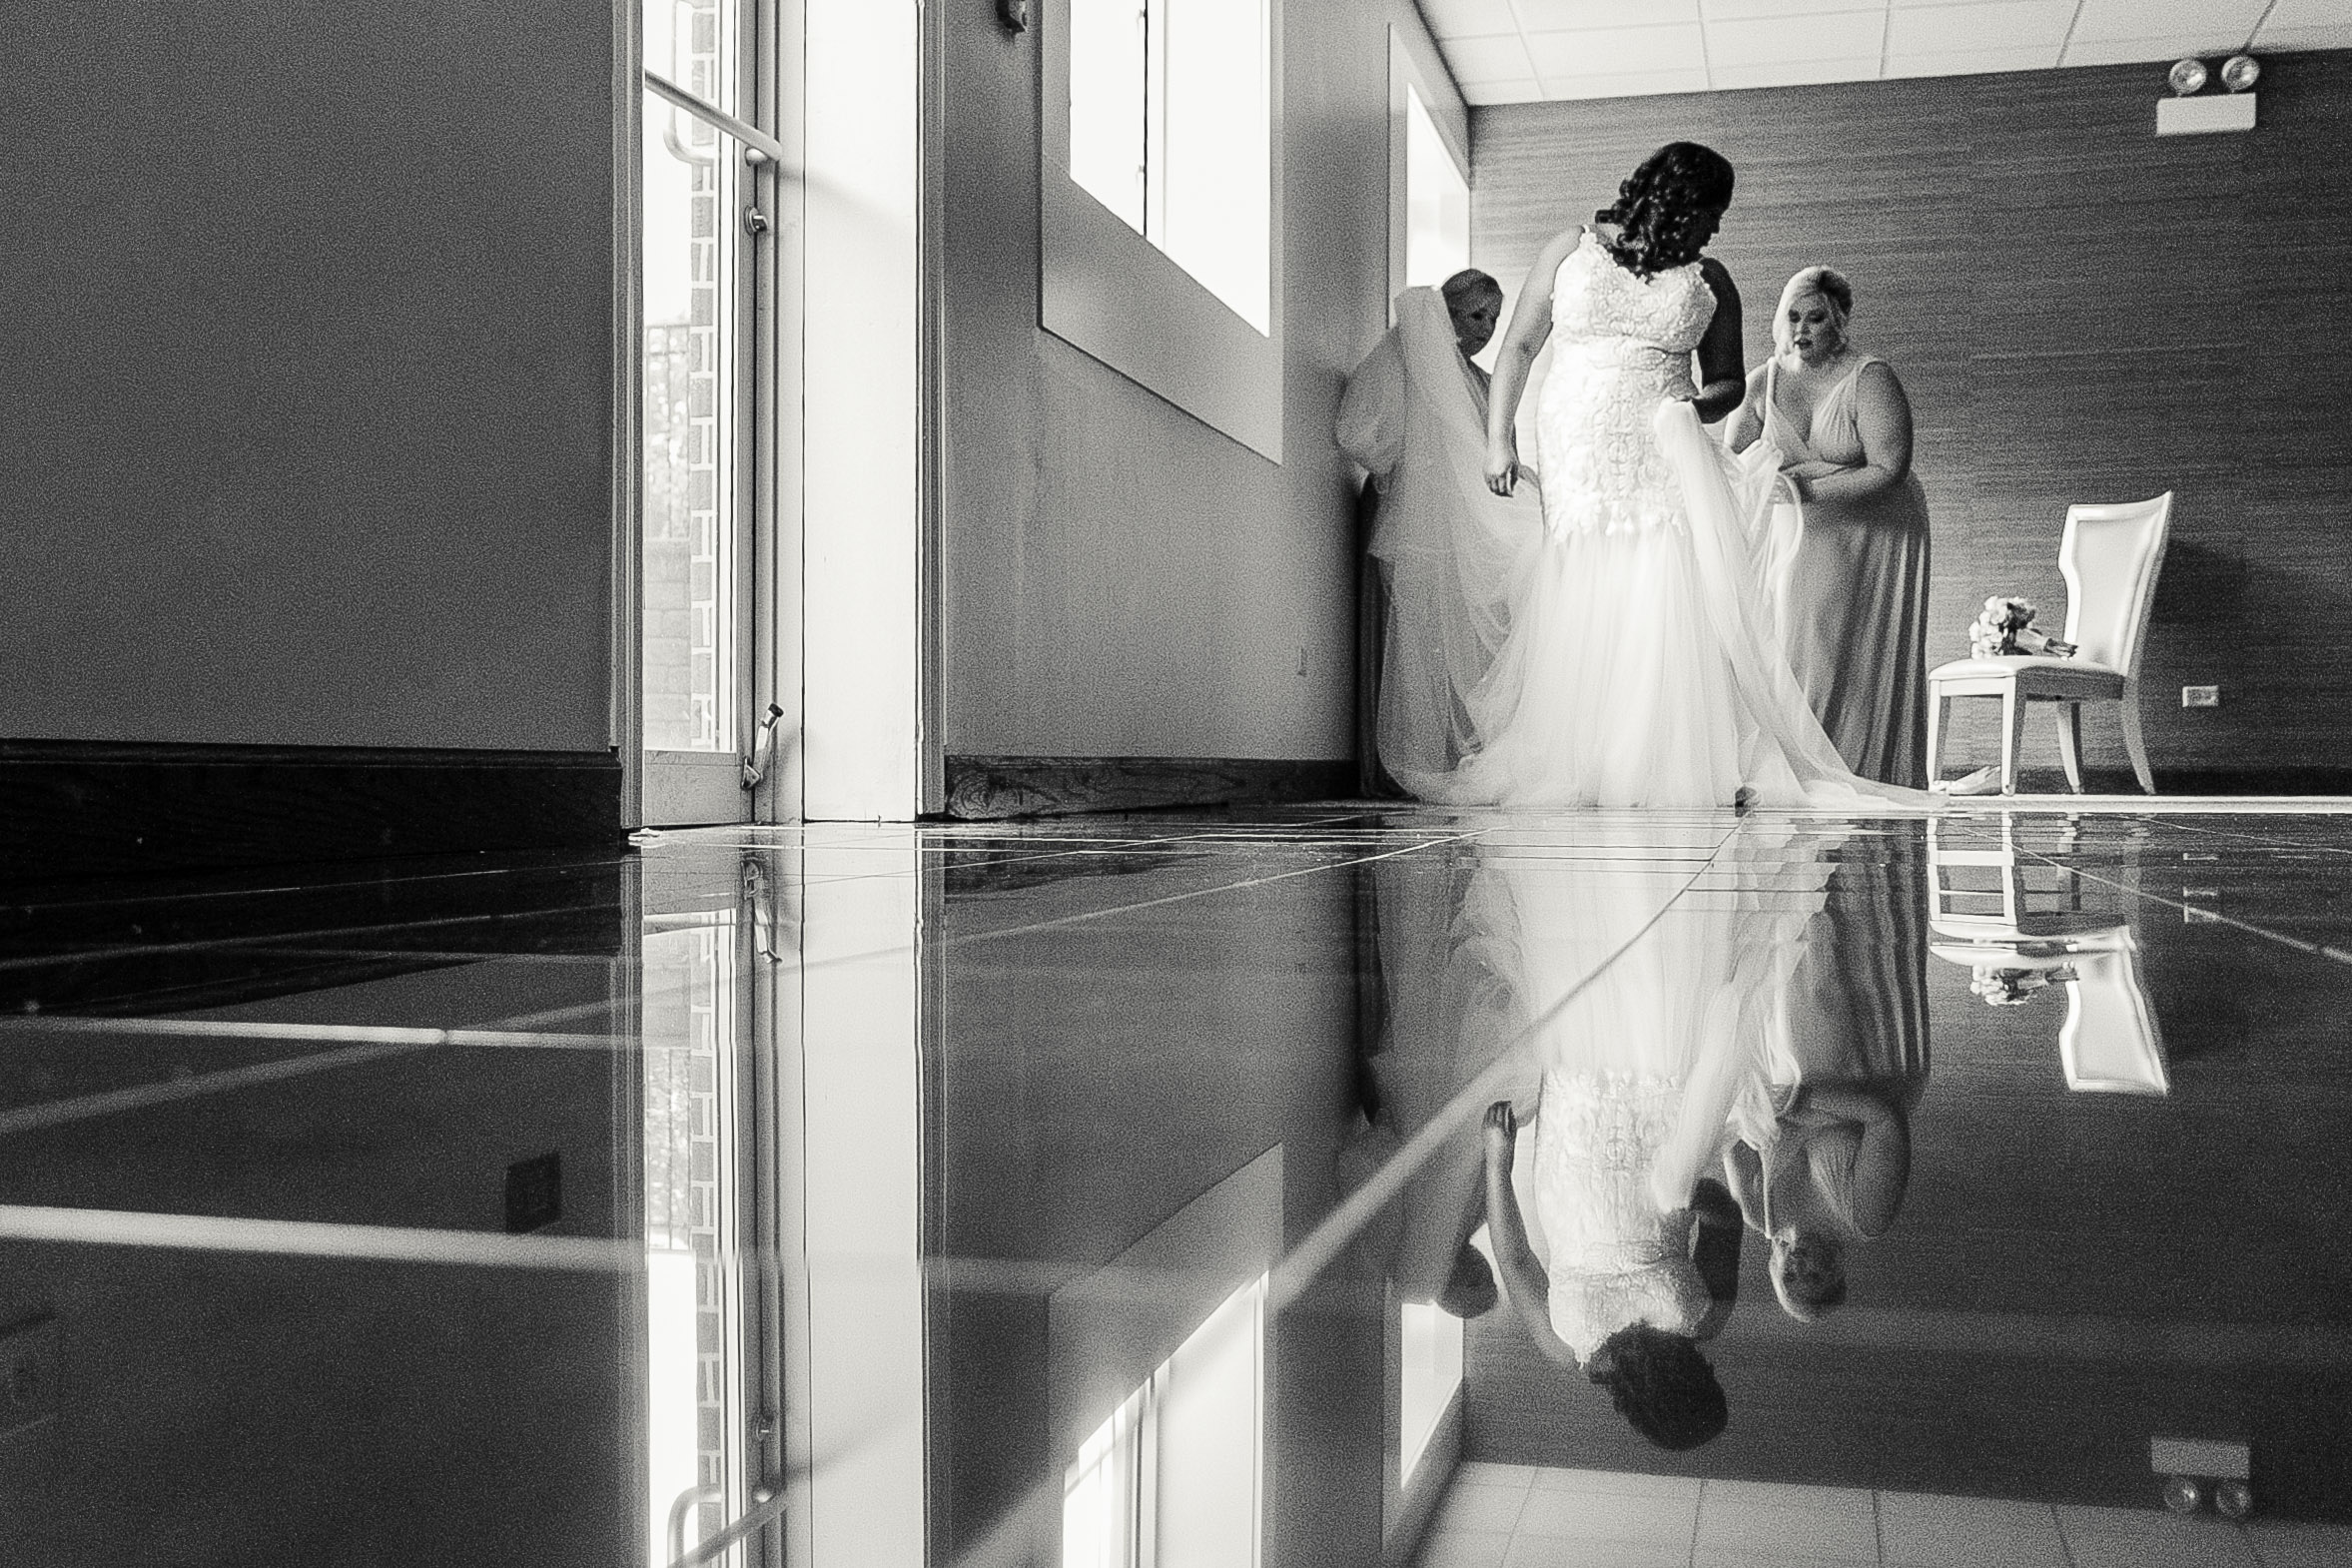 reflection shot of bride getting ready